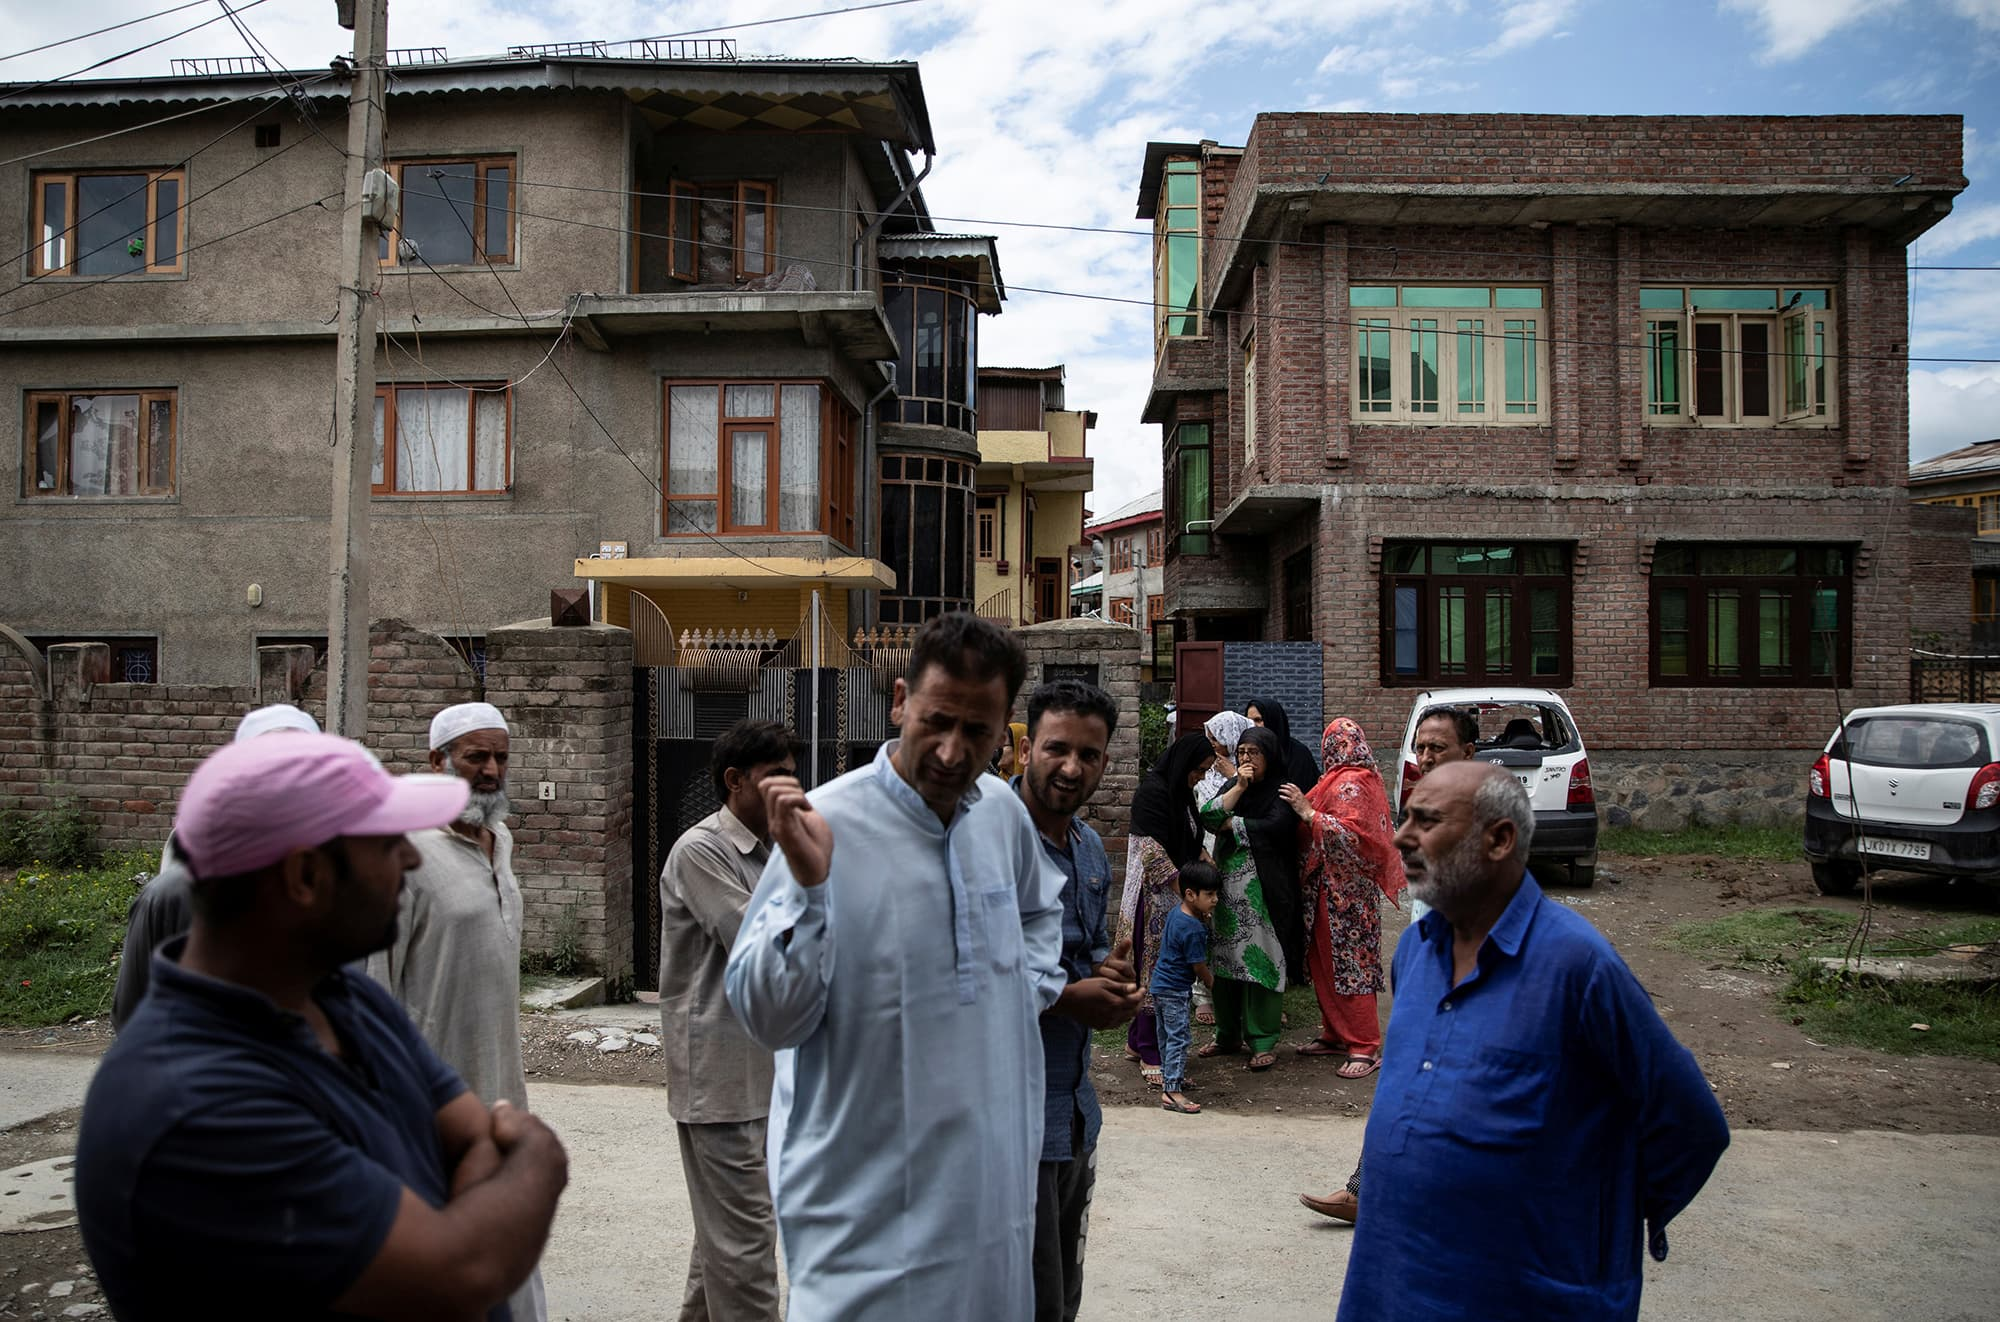 Kashmiri residents stand in a street in a neighbourhood where dozens of houses and vehicles were allegedly damaged by Indian security forces after clashes between protesters and the security forces in Srinagar under curfew. ─ Reuters